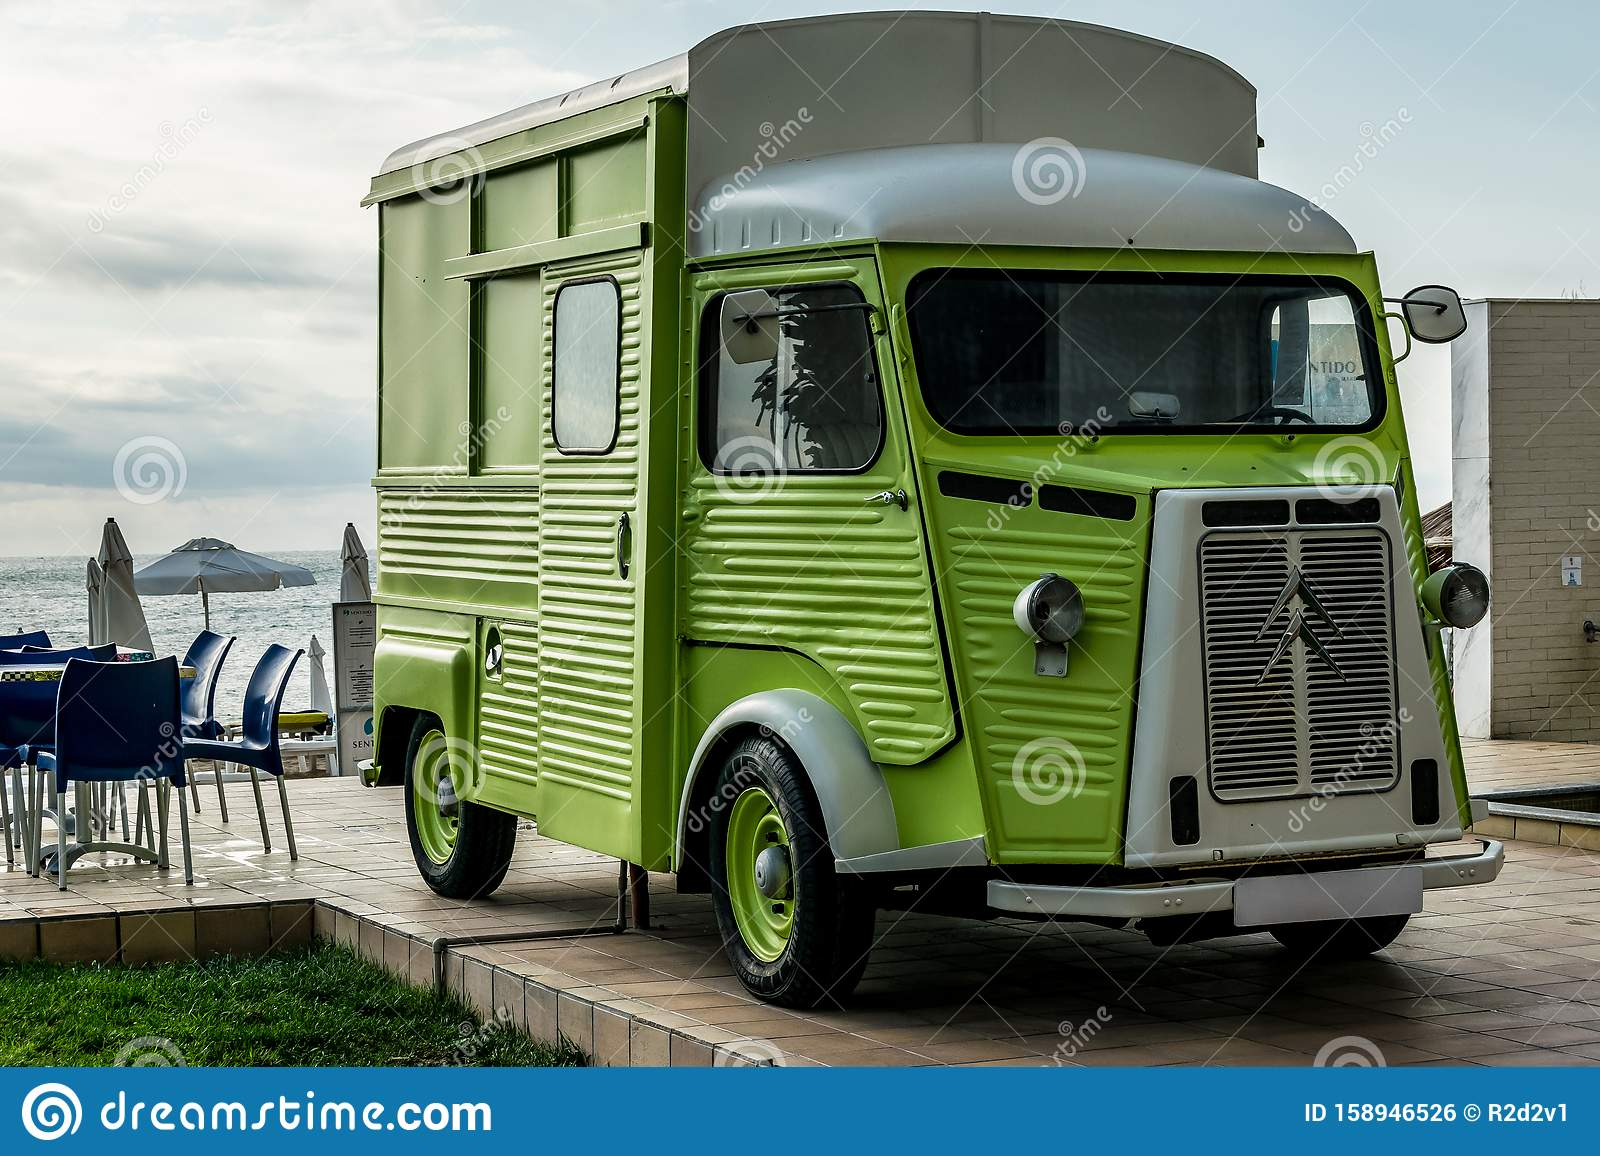 926 Retro Food Truck Photos Free Royalty Free Stock Photos From Dreamstime